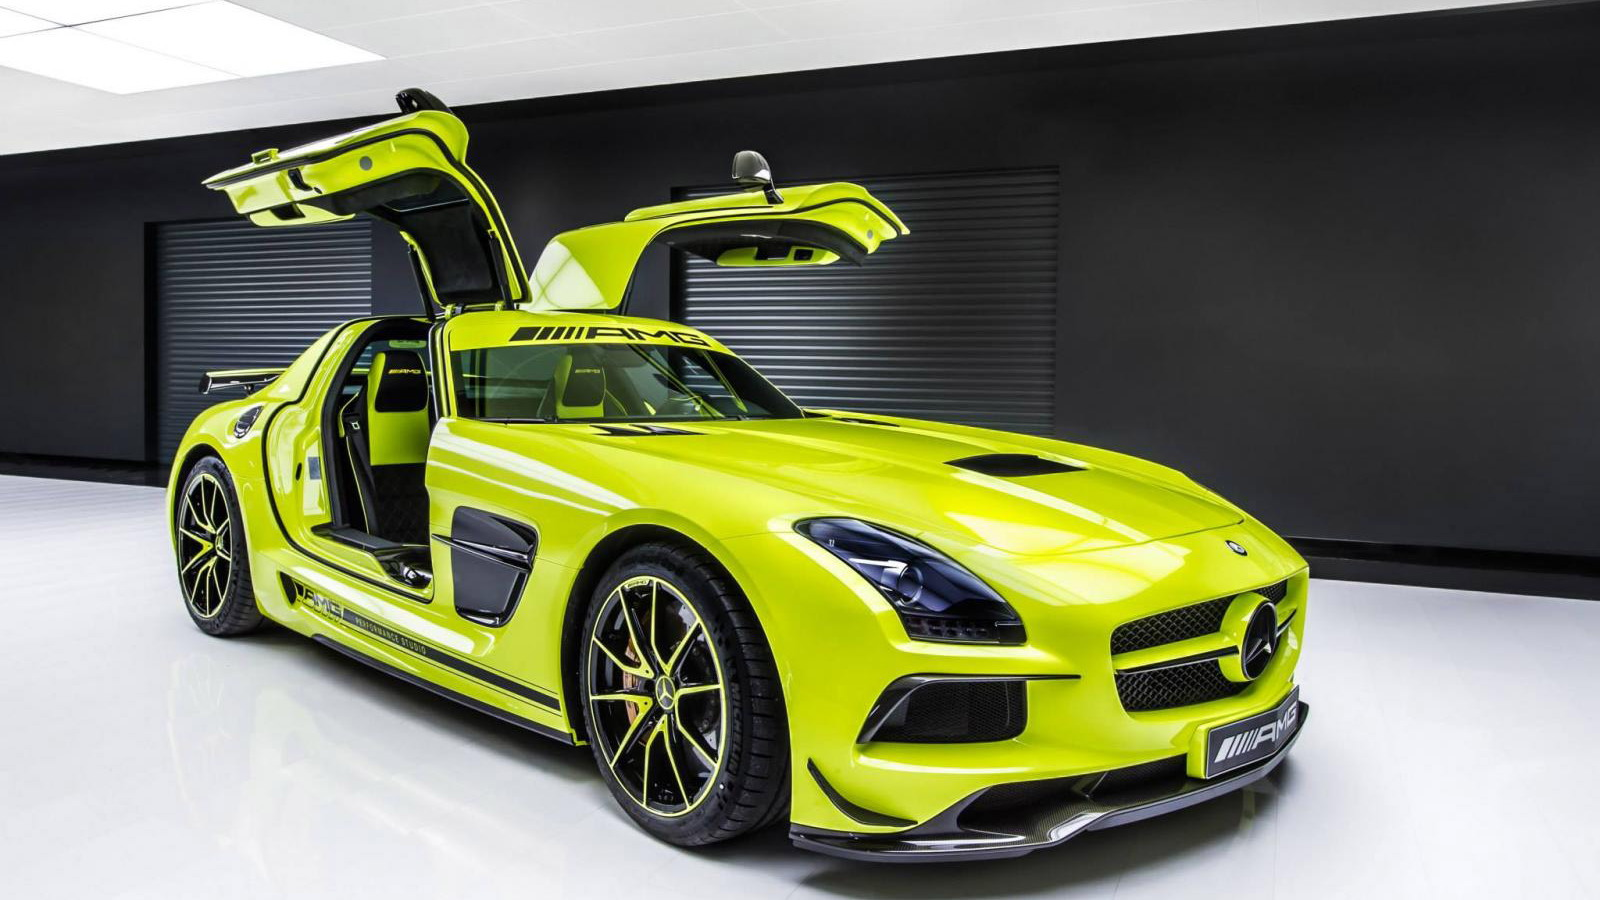 由AMG Performance Studio增强的2014 Mercedes-Benz SLS AMG黑色系列